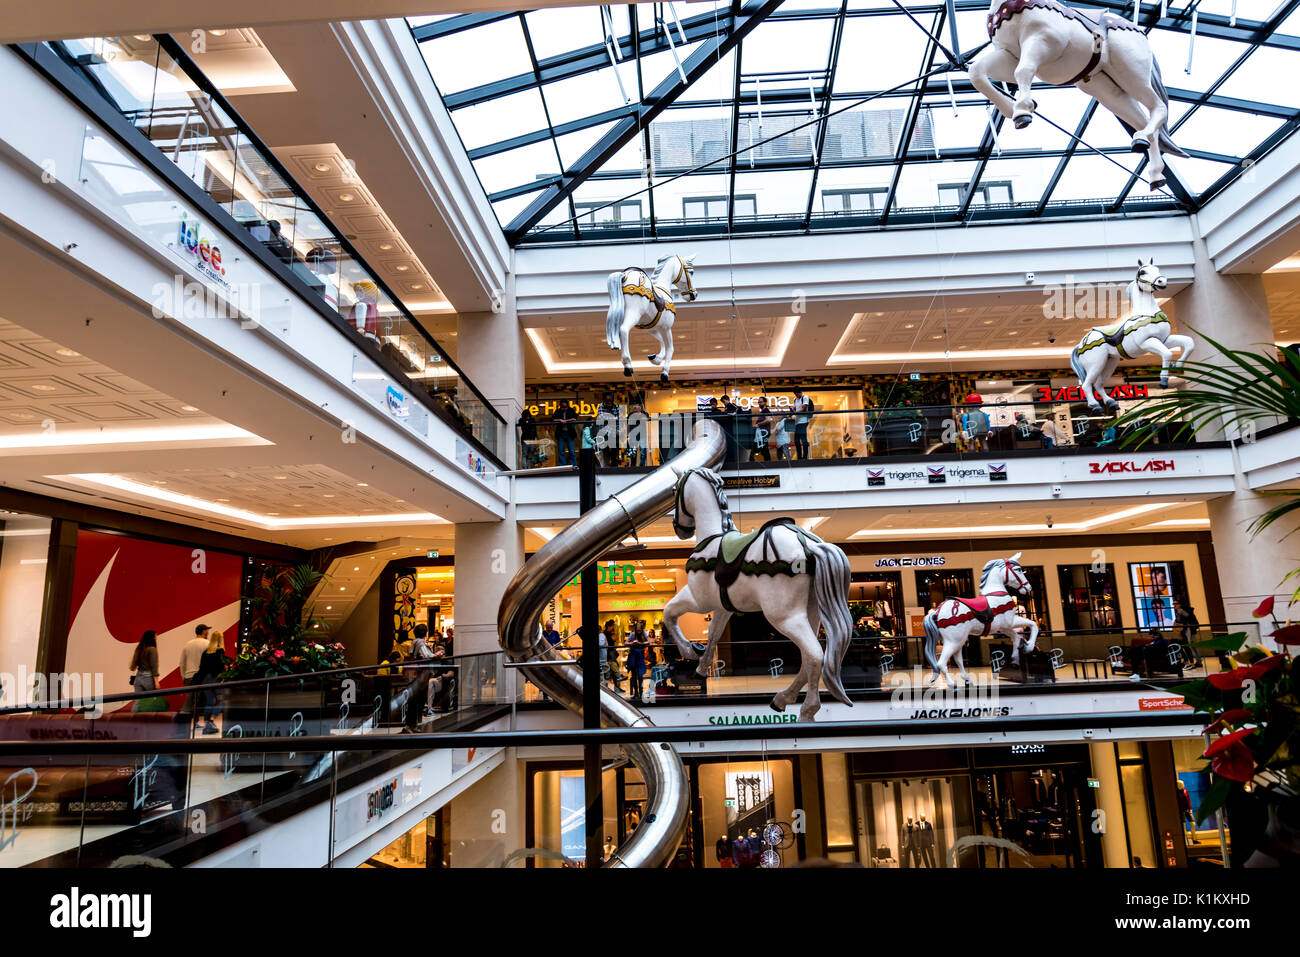 The huge complex of the Mall of Berlin is located near the Berlin Potsdamer Platz railway station. - Stock Image